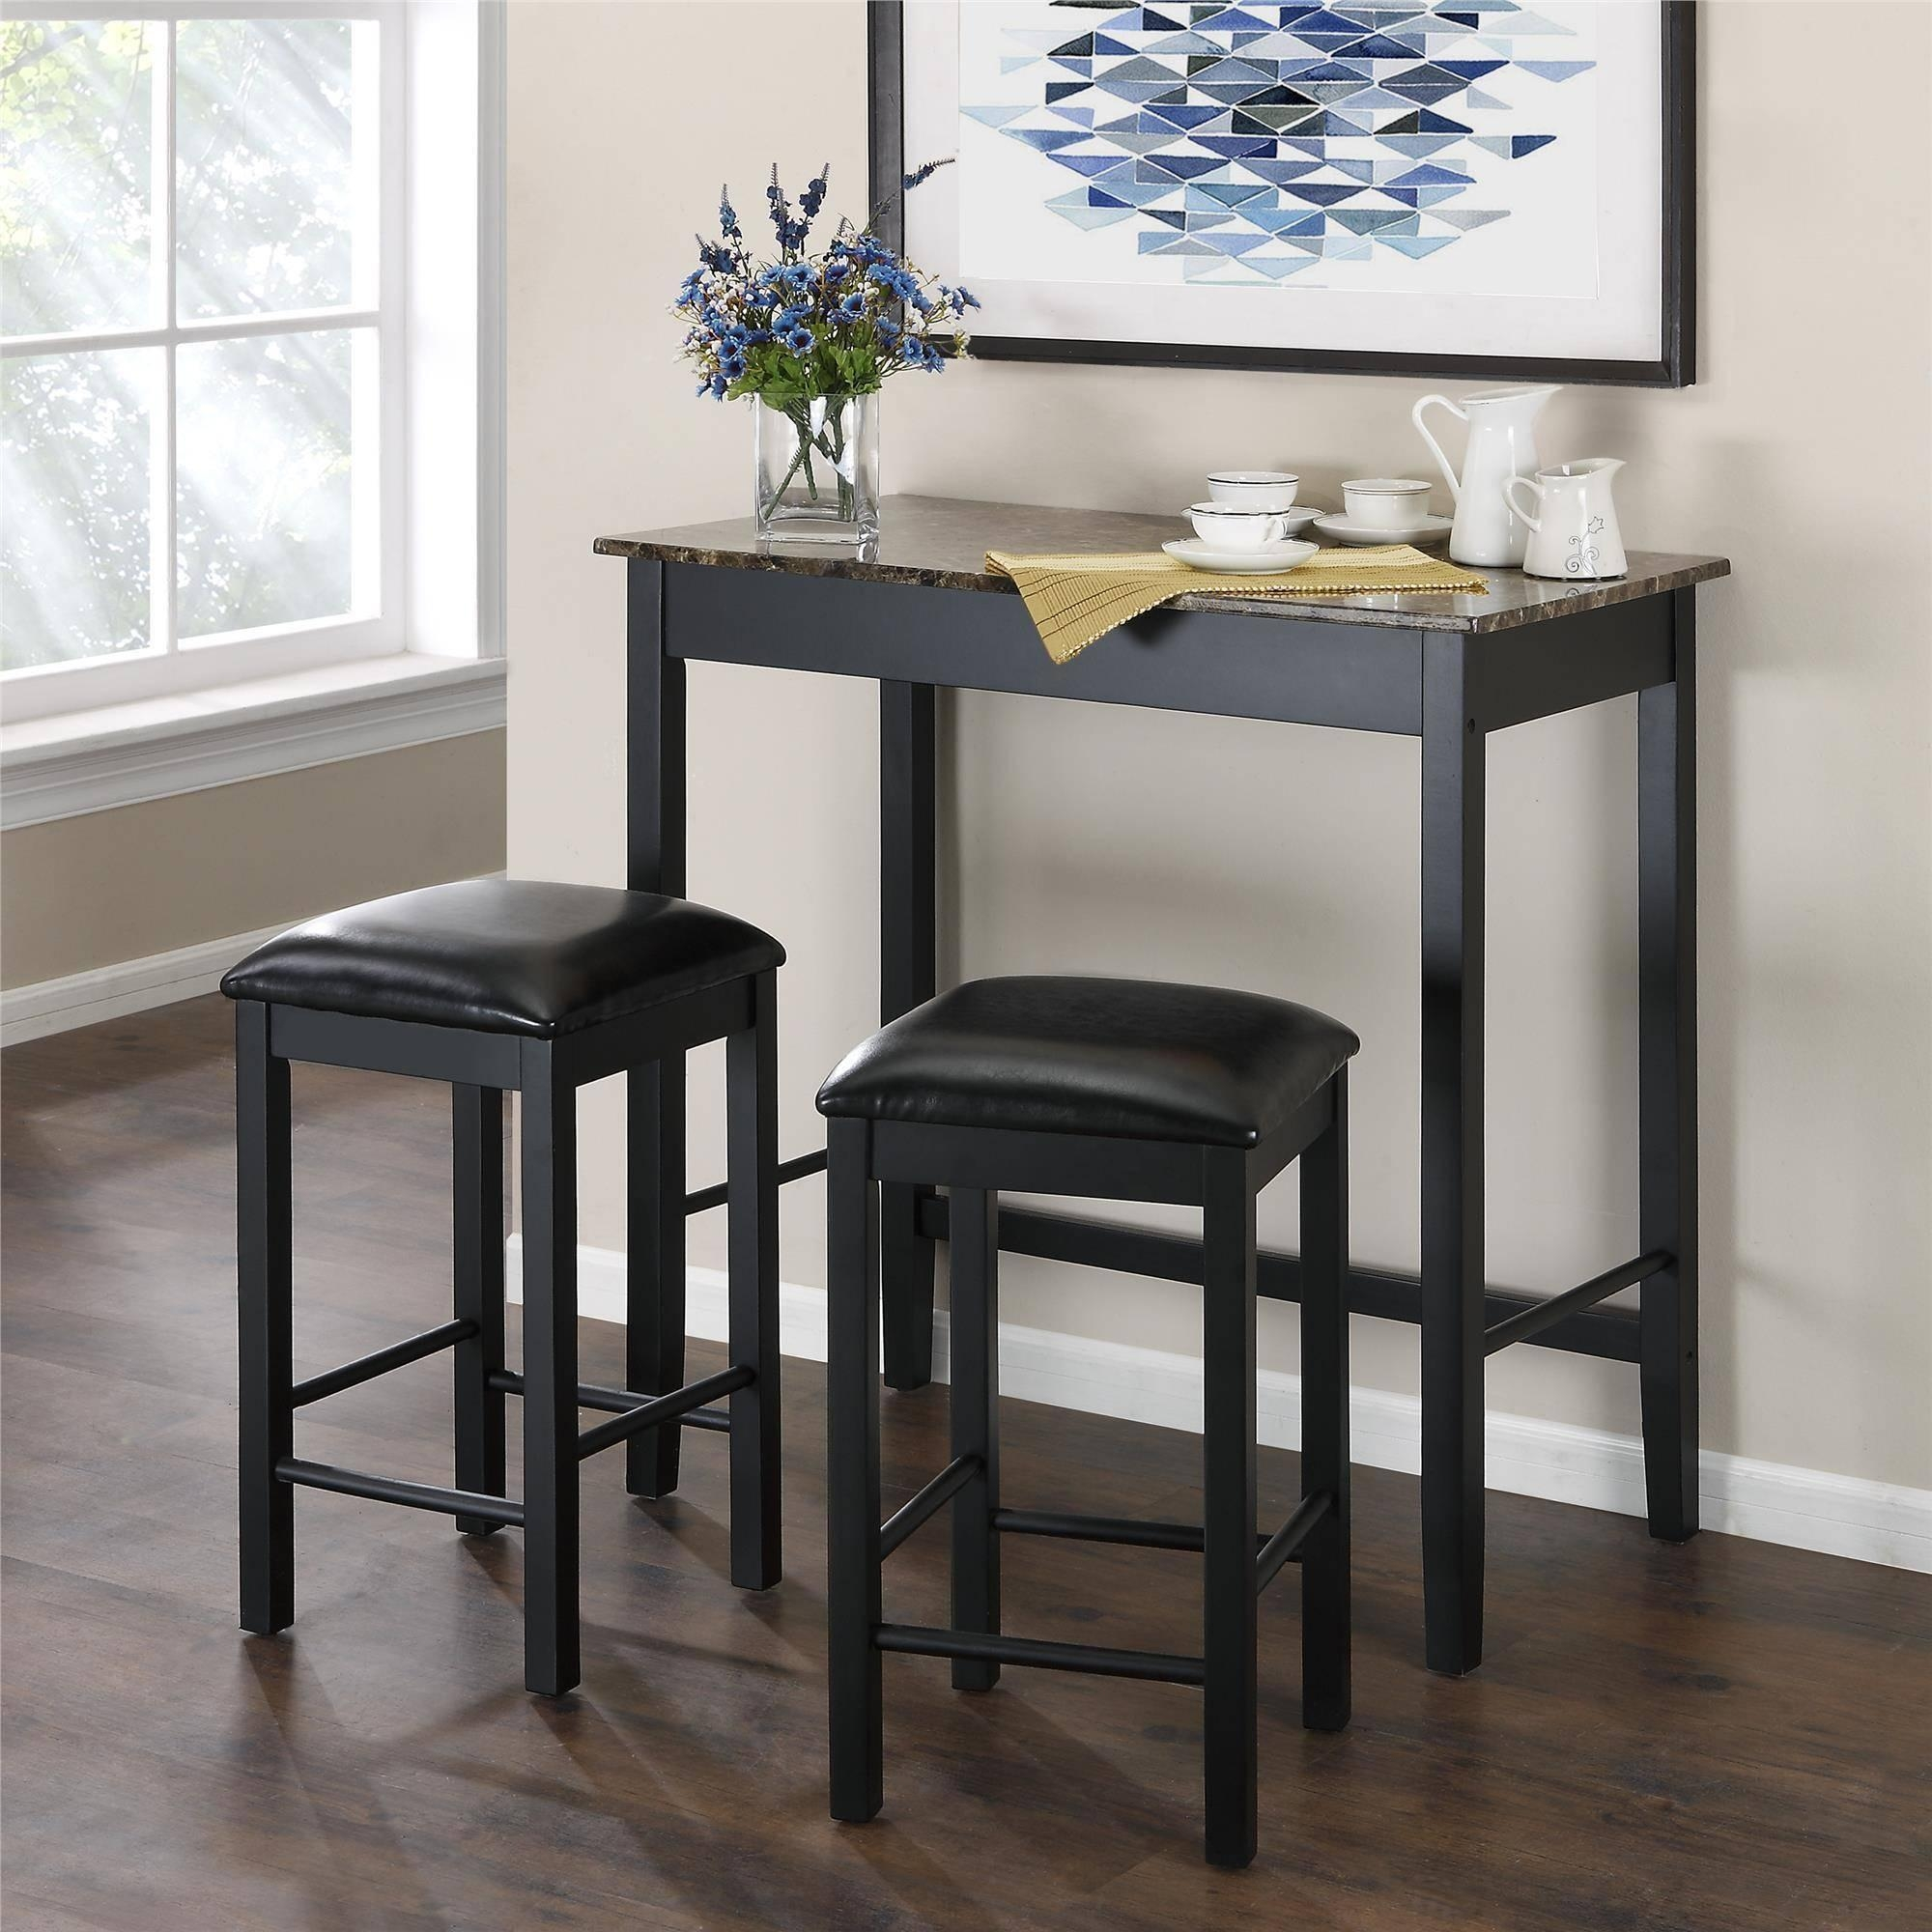 Dorel Living Devyn 3 Piece Faux Marble Pub Dining Set, Black Intended For Sofa Table With Chairs (View 11 of 20)